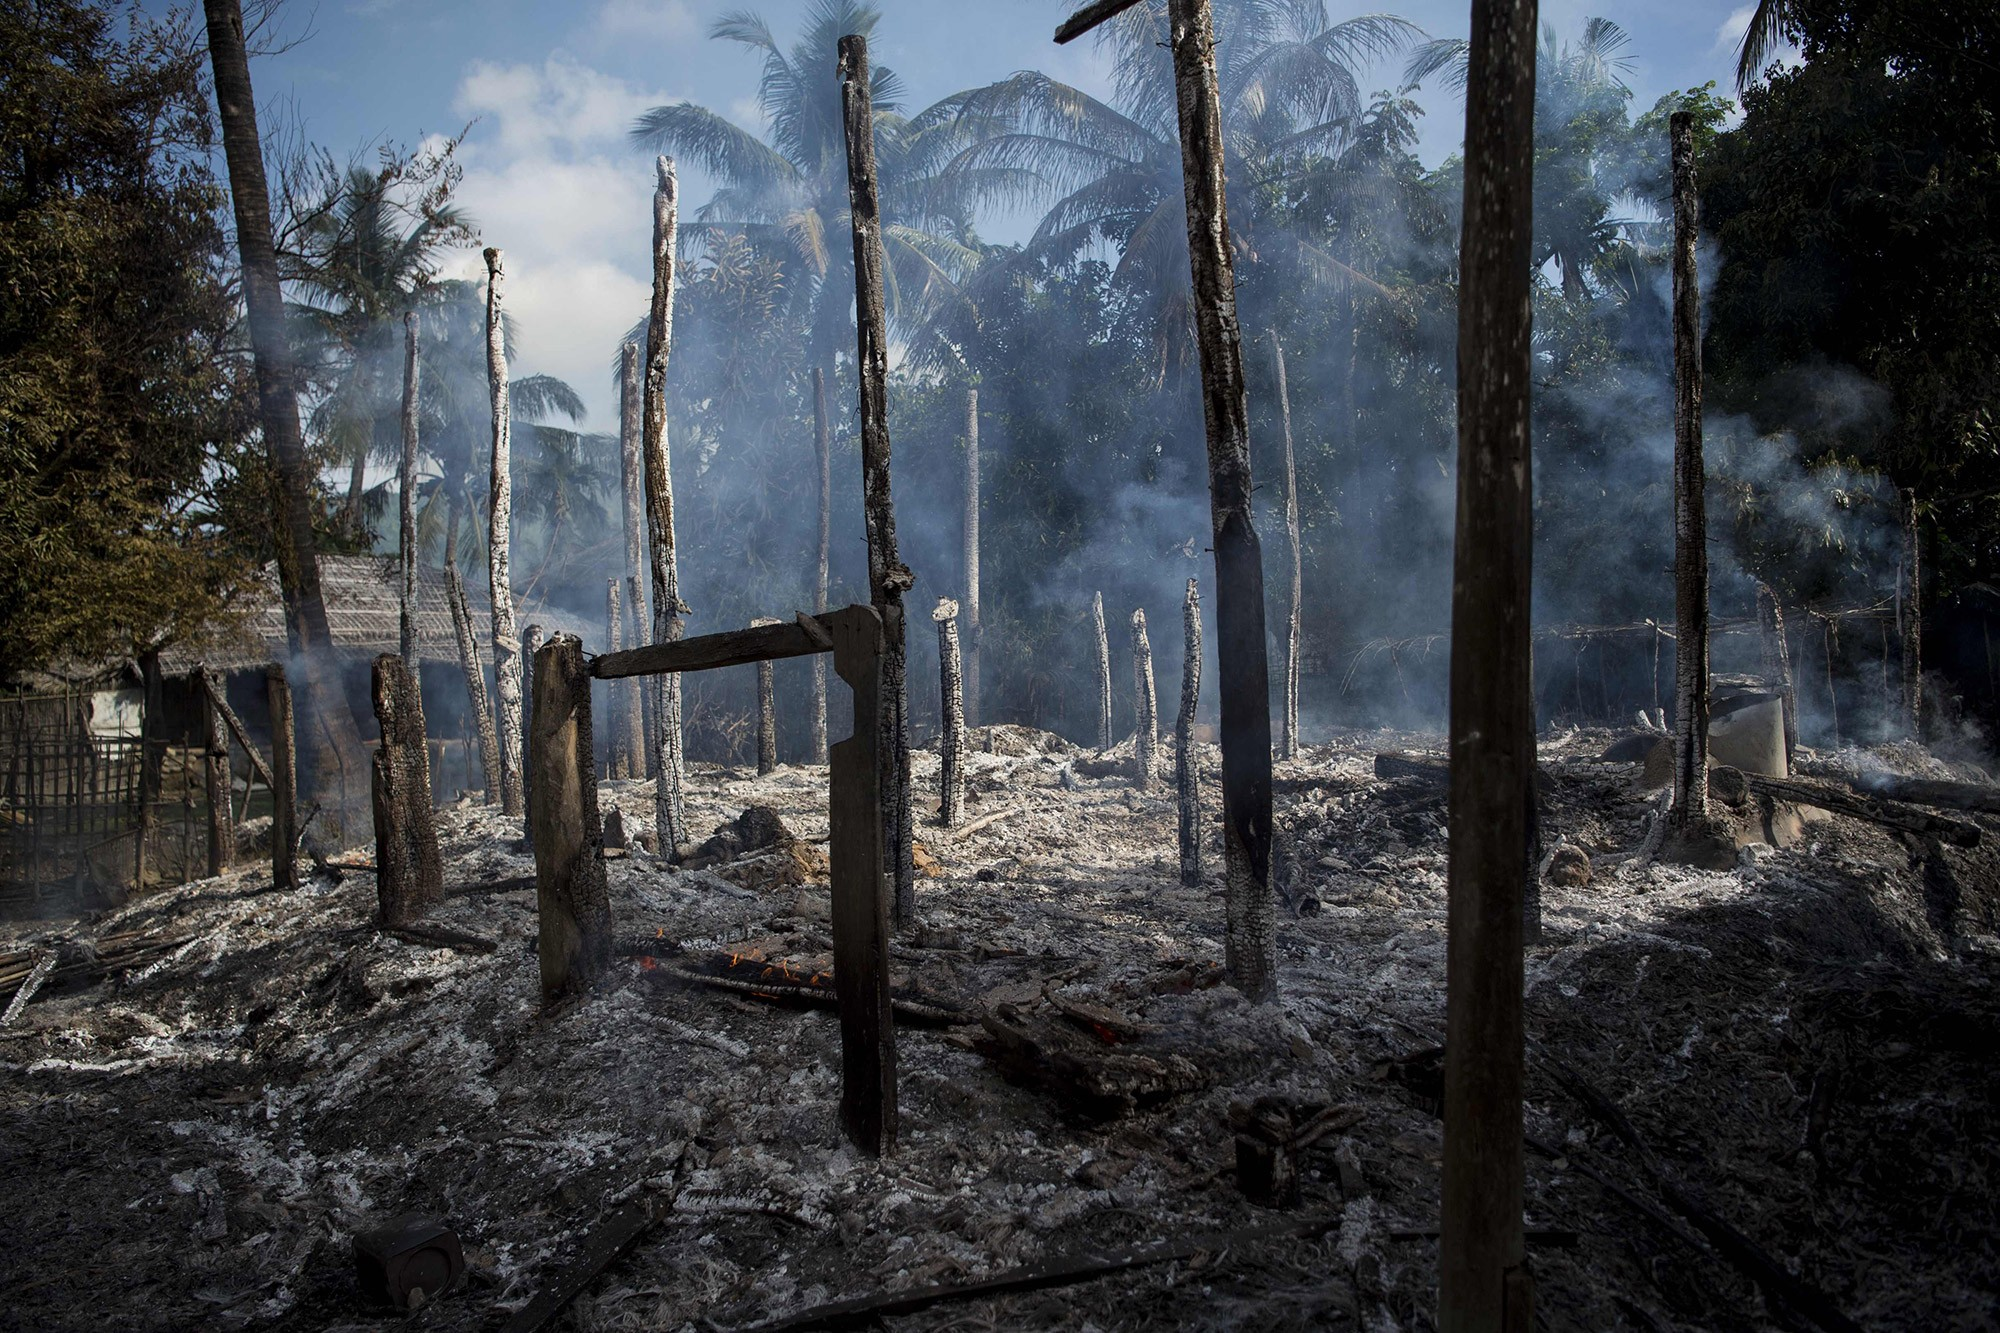 In Myanmar's Rakhine, entire Rohingya villages have been burnt to ground. Photo credit: AFP